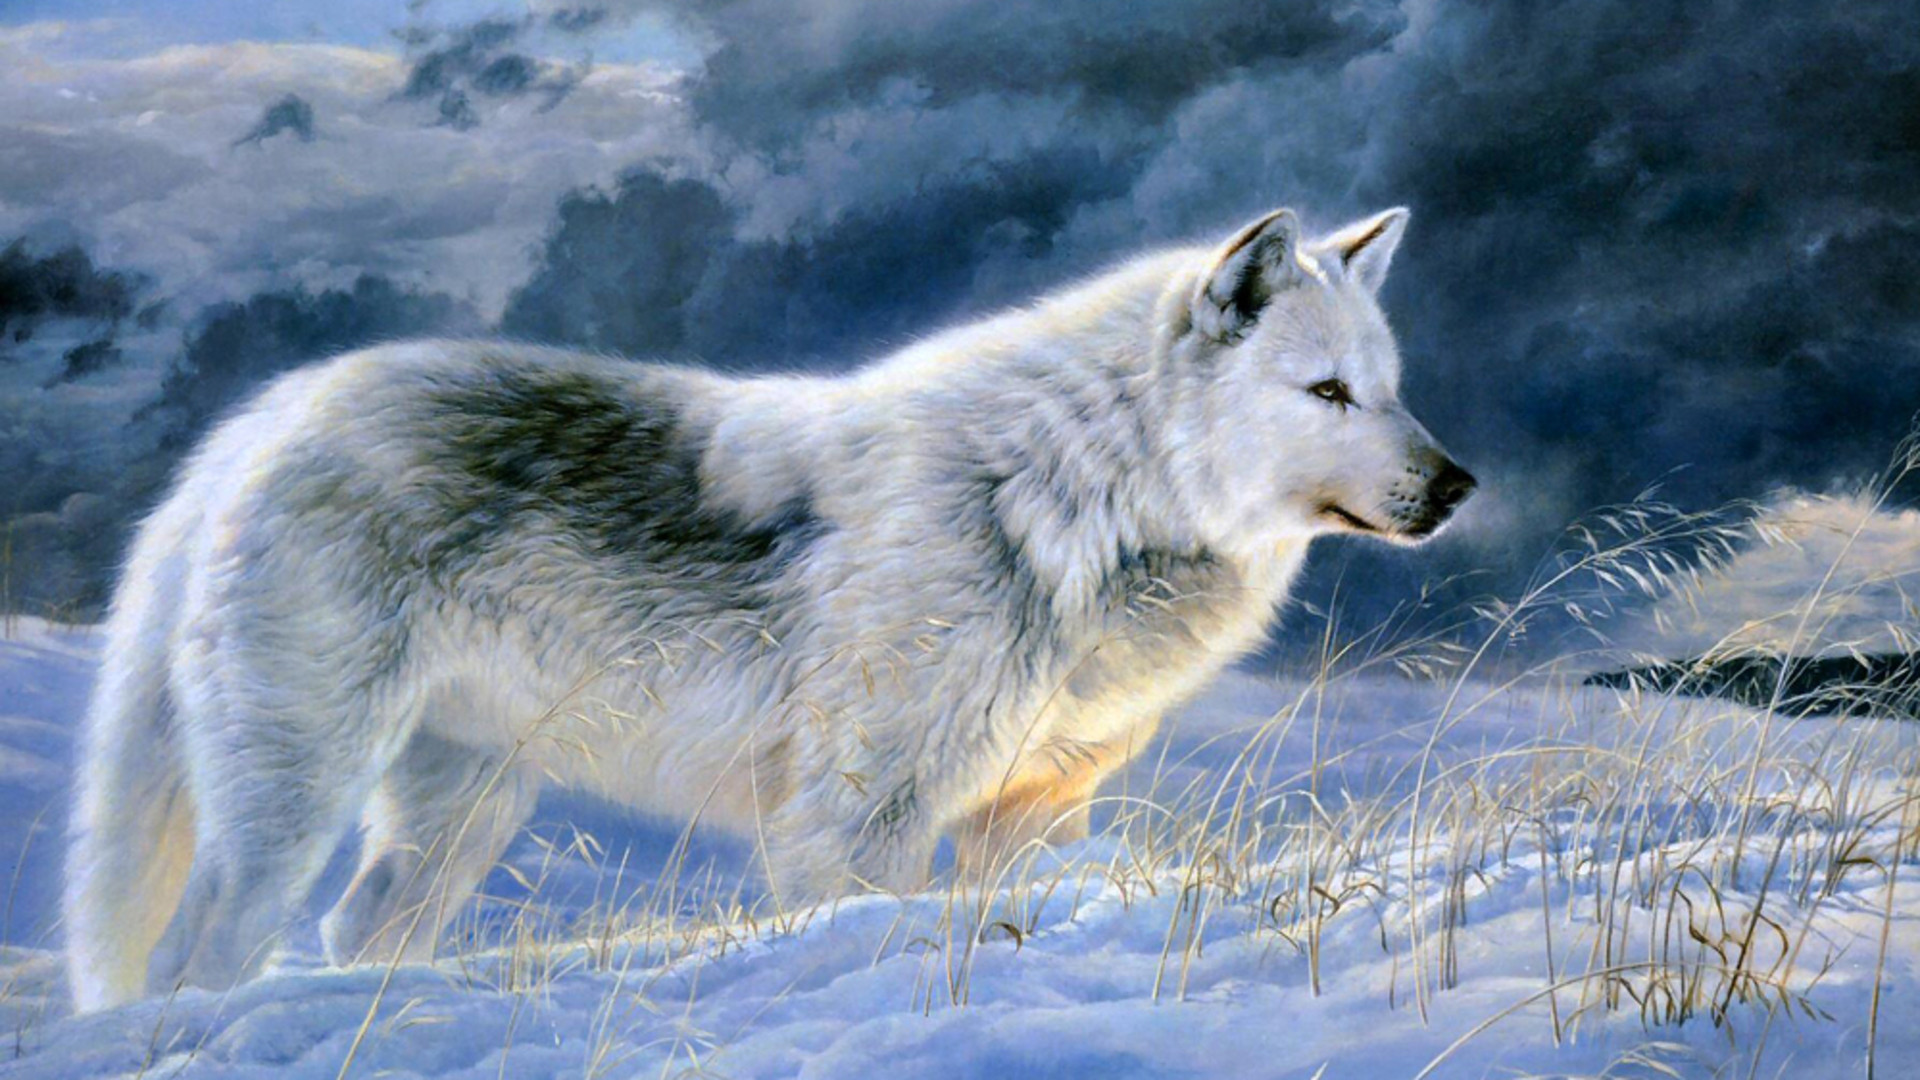 1920x1080 Dudespie images Wolves HD wallpaper and background photos